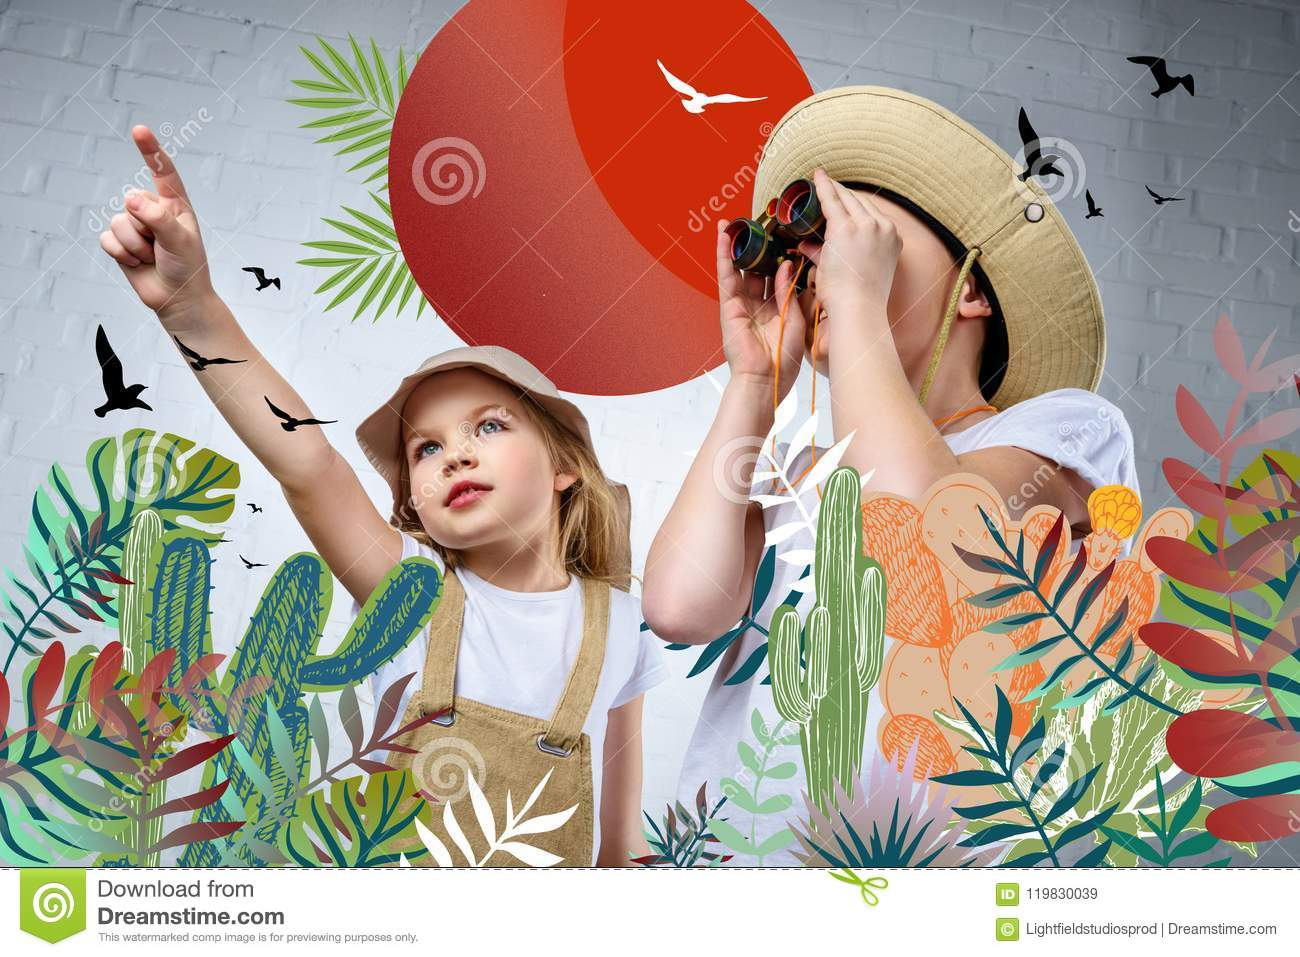 children in safari costumes and hats pointing and looking in binoculars at birds